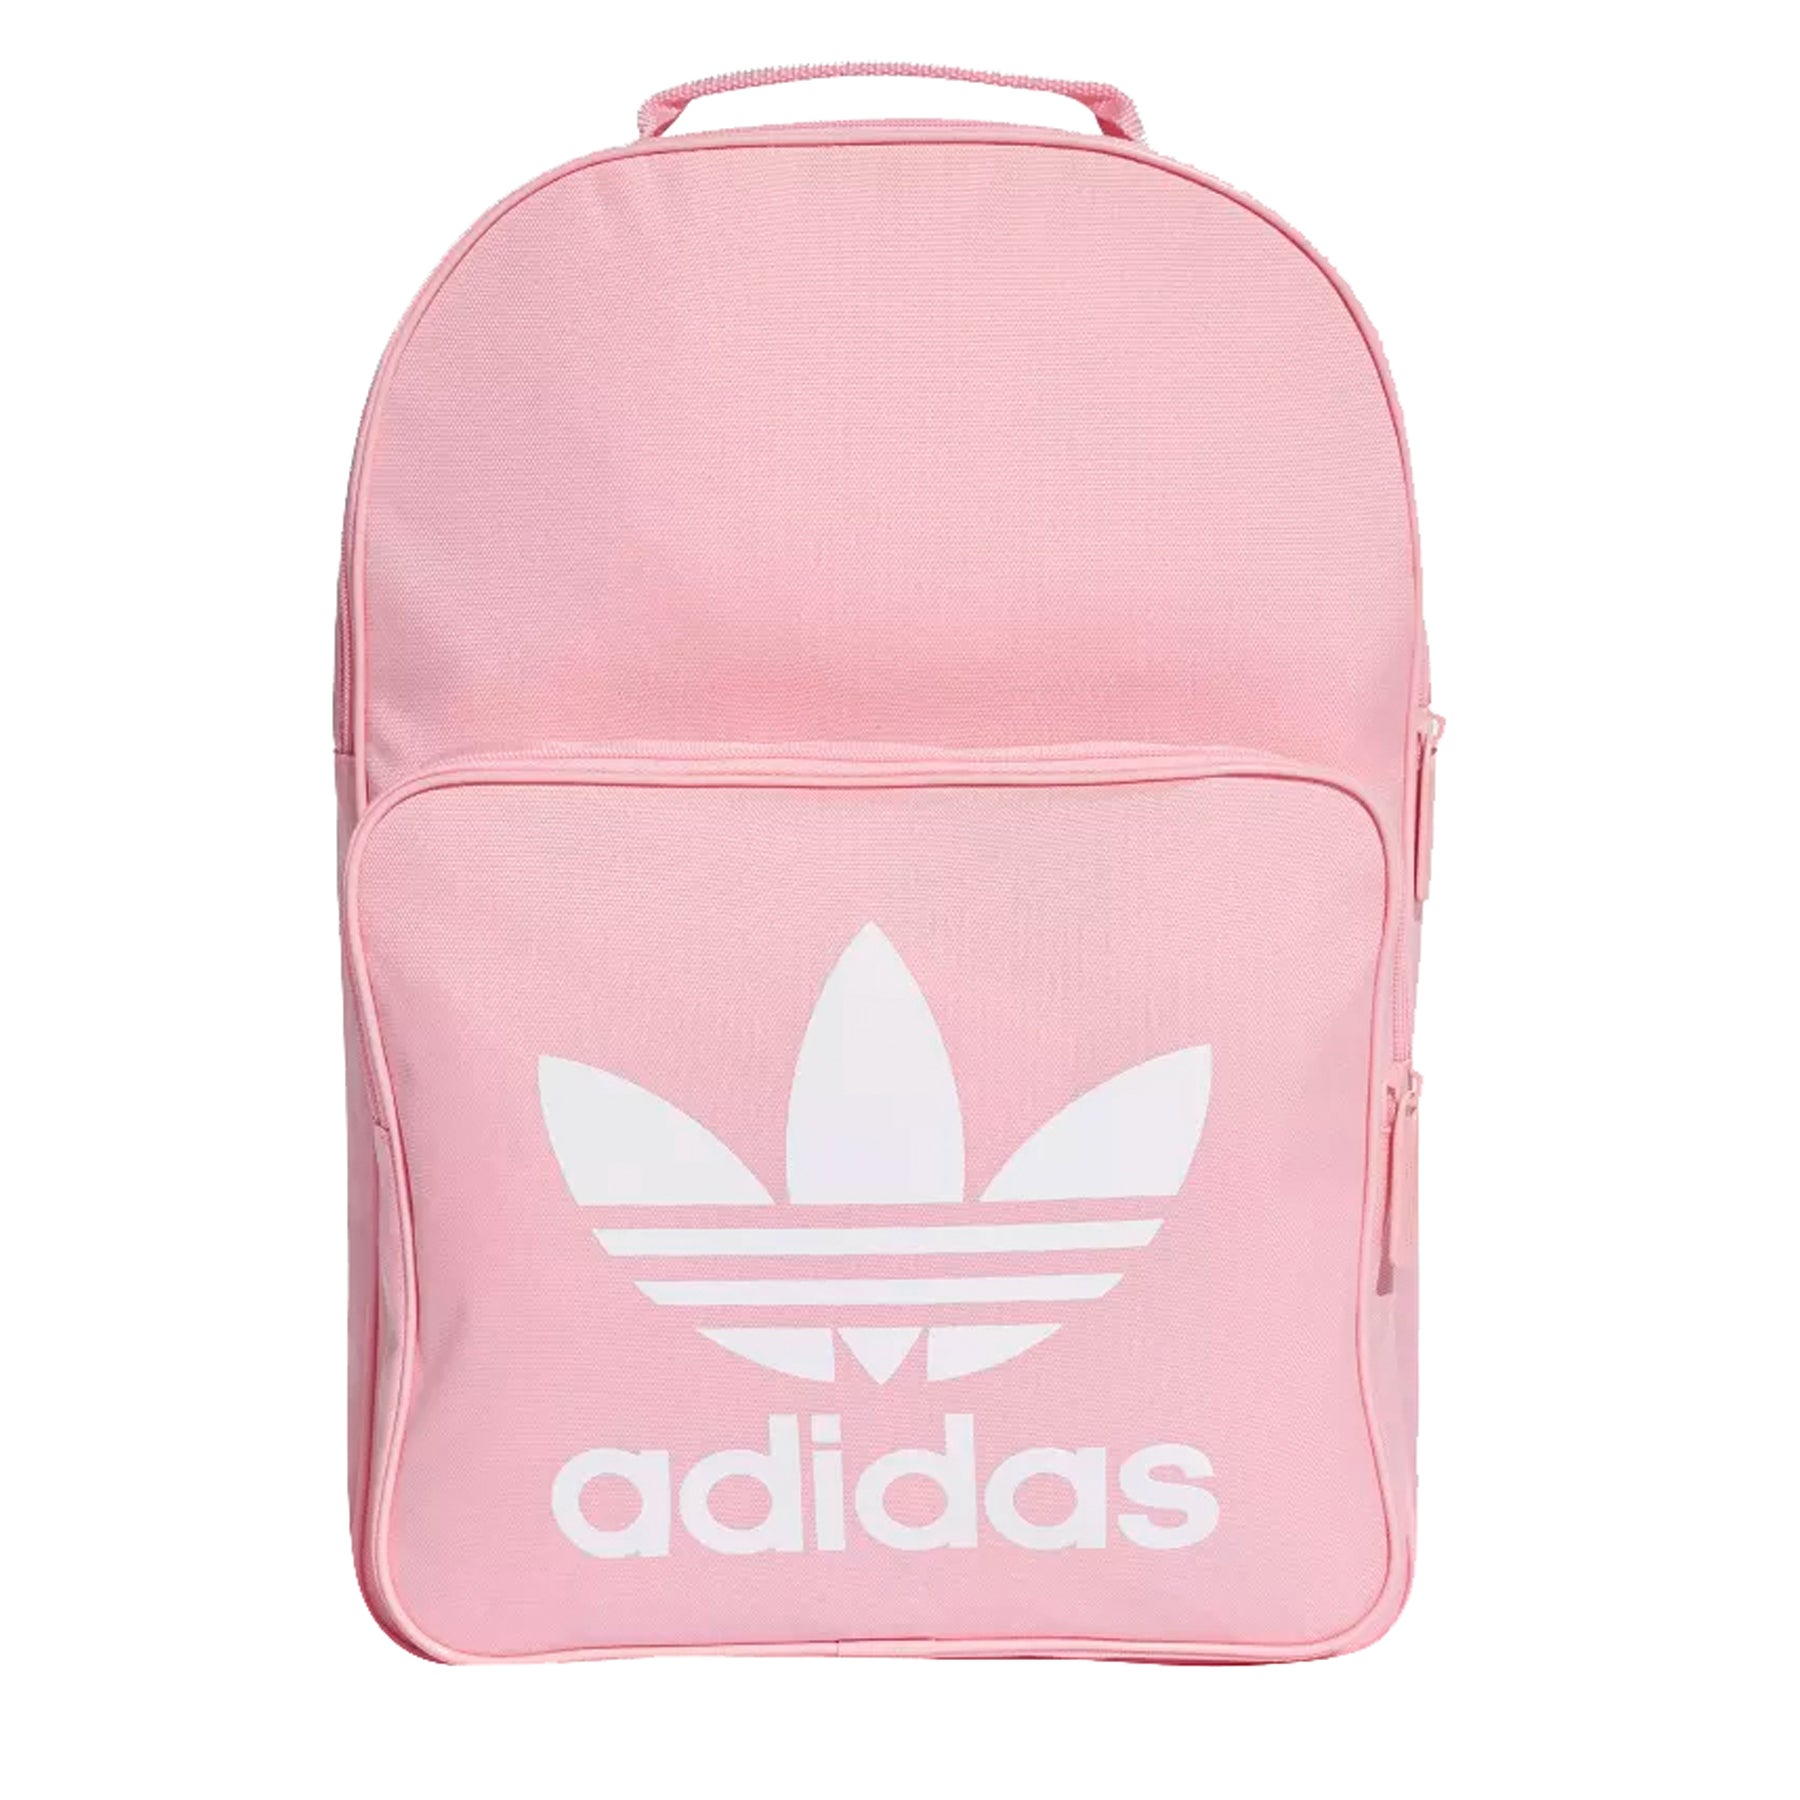 Adidas Originals Classic Trefoil Backpack - Light Pink